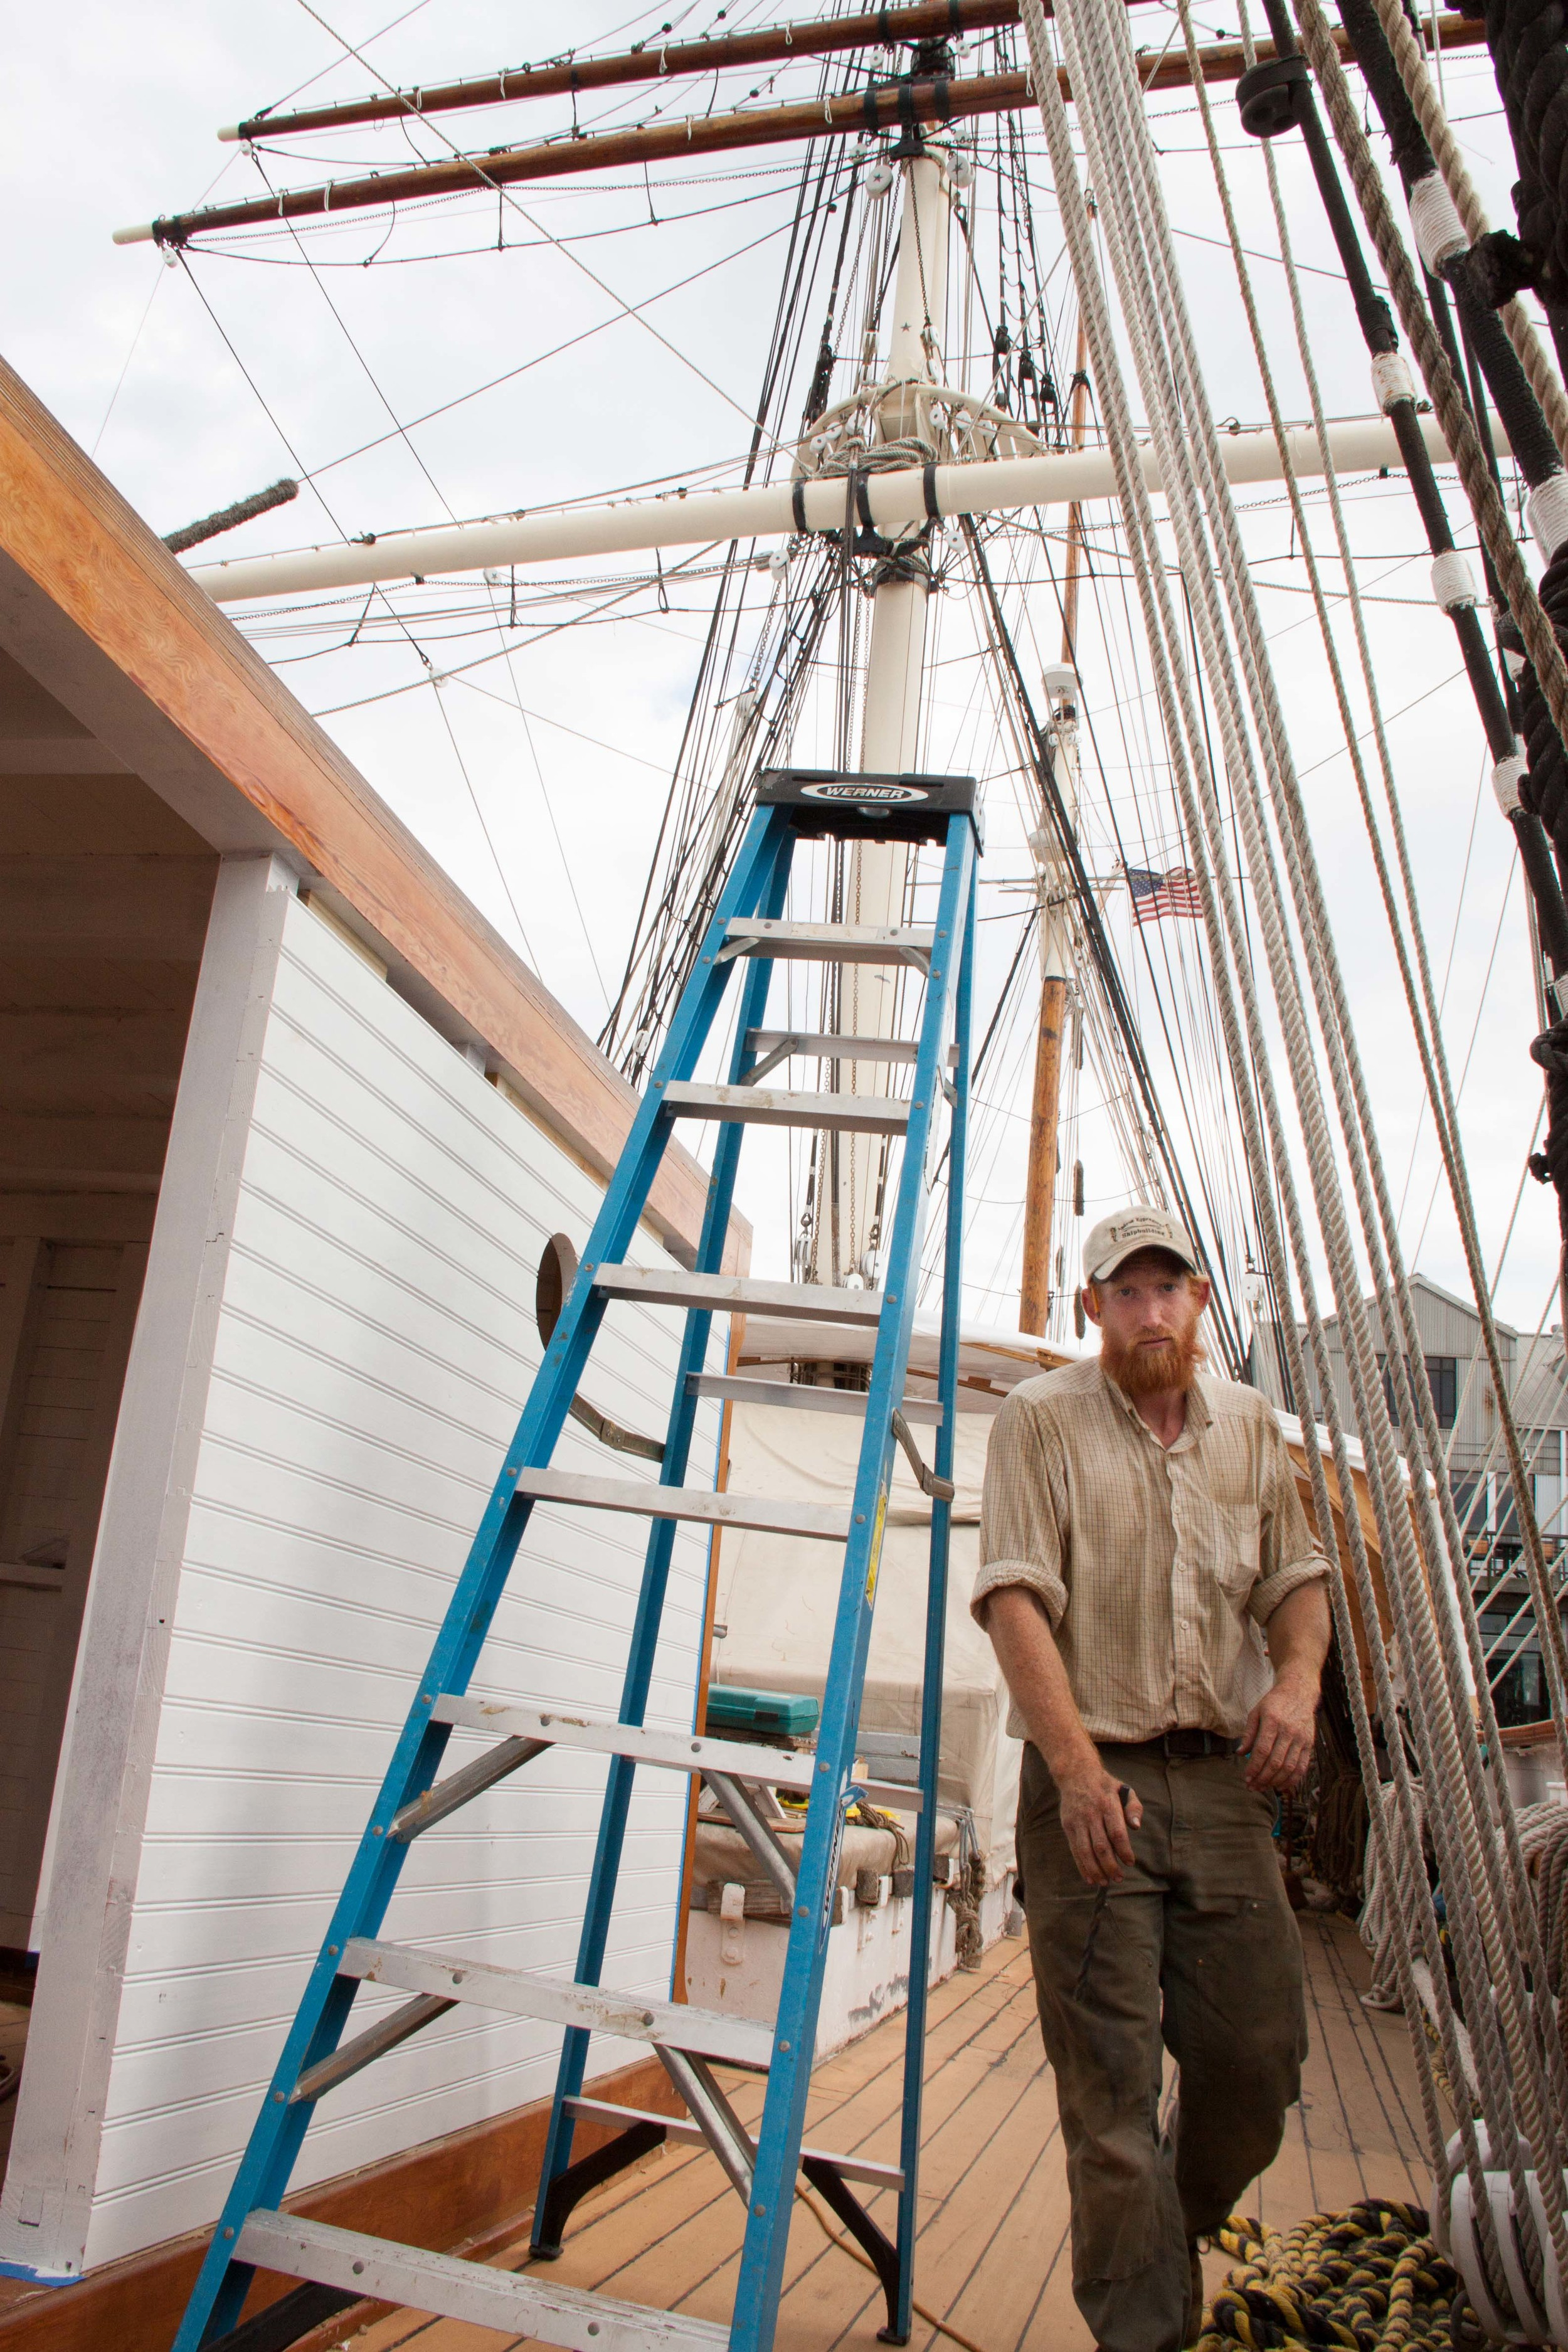 Rob Blood, a shipwright based in Maine, came down during a six week crunch period.